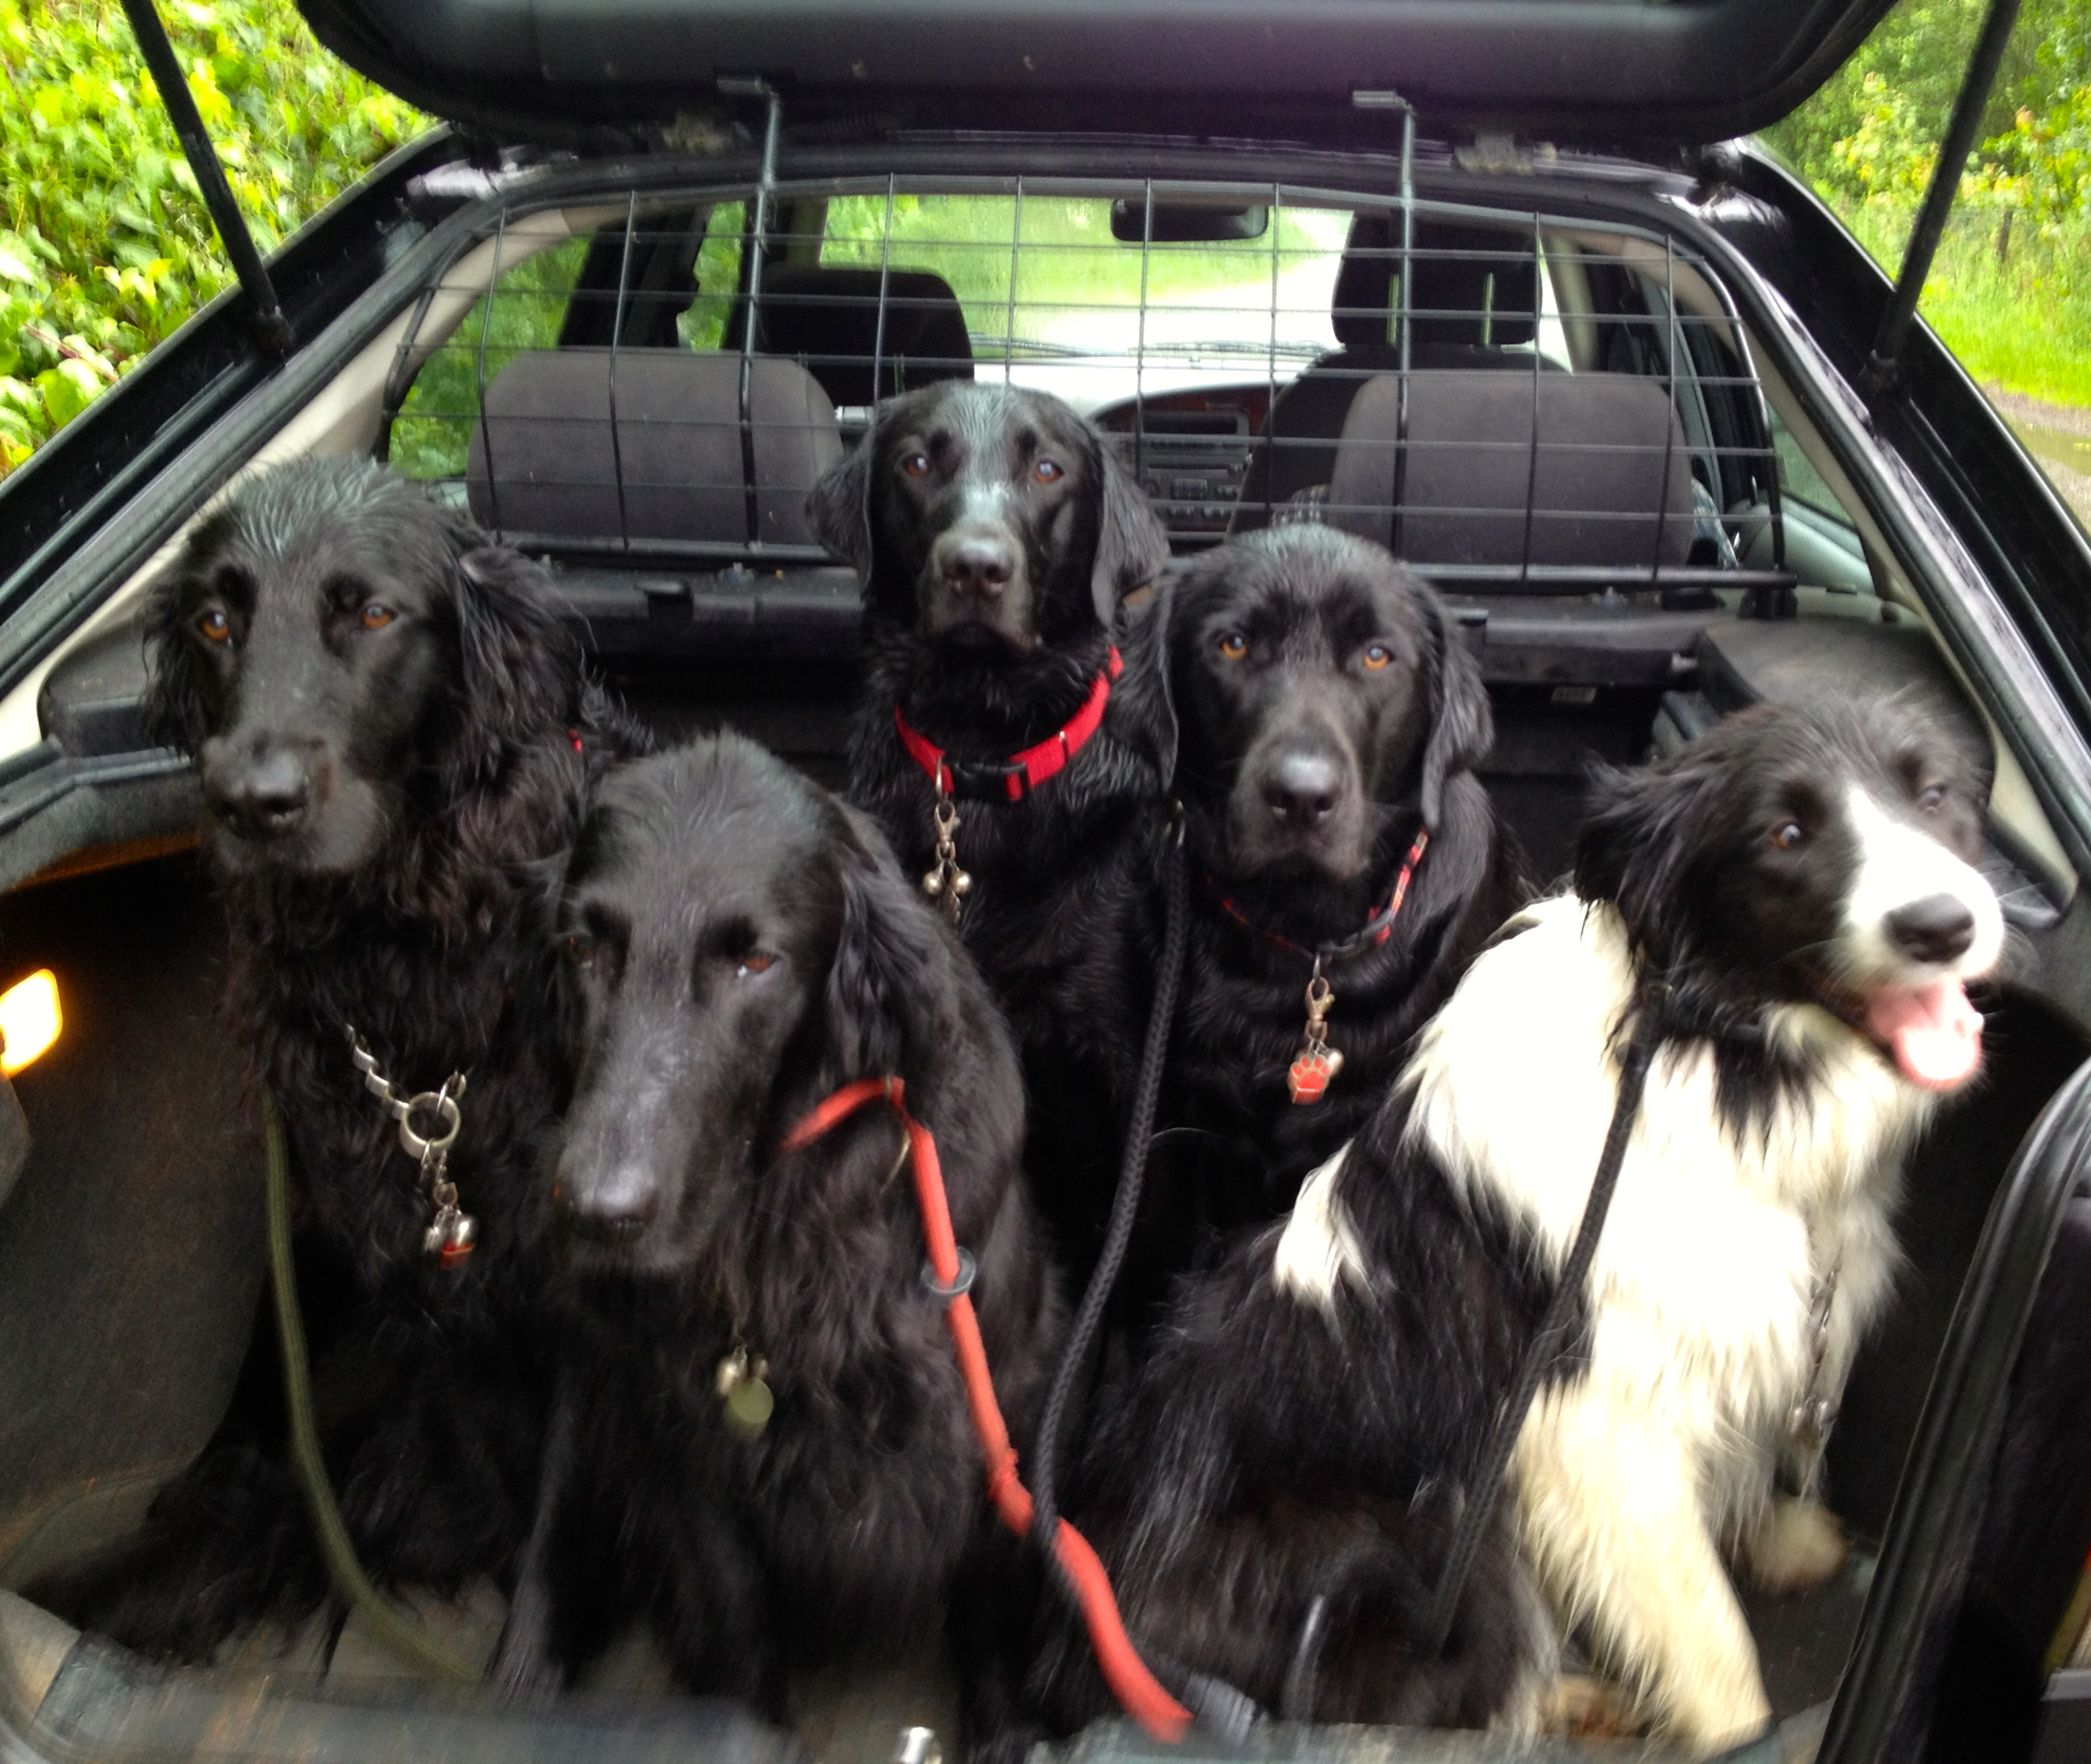 raffi, stella, archie, marley and hamish in the car